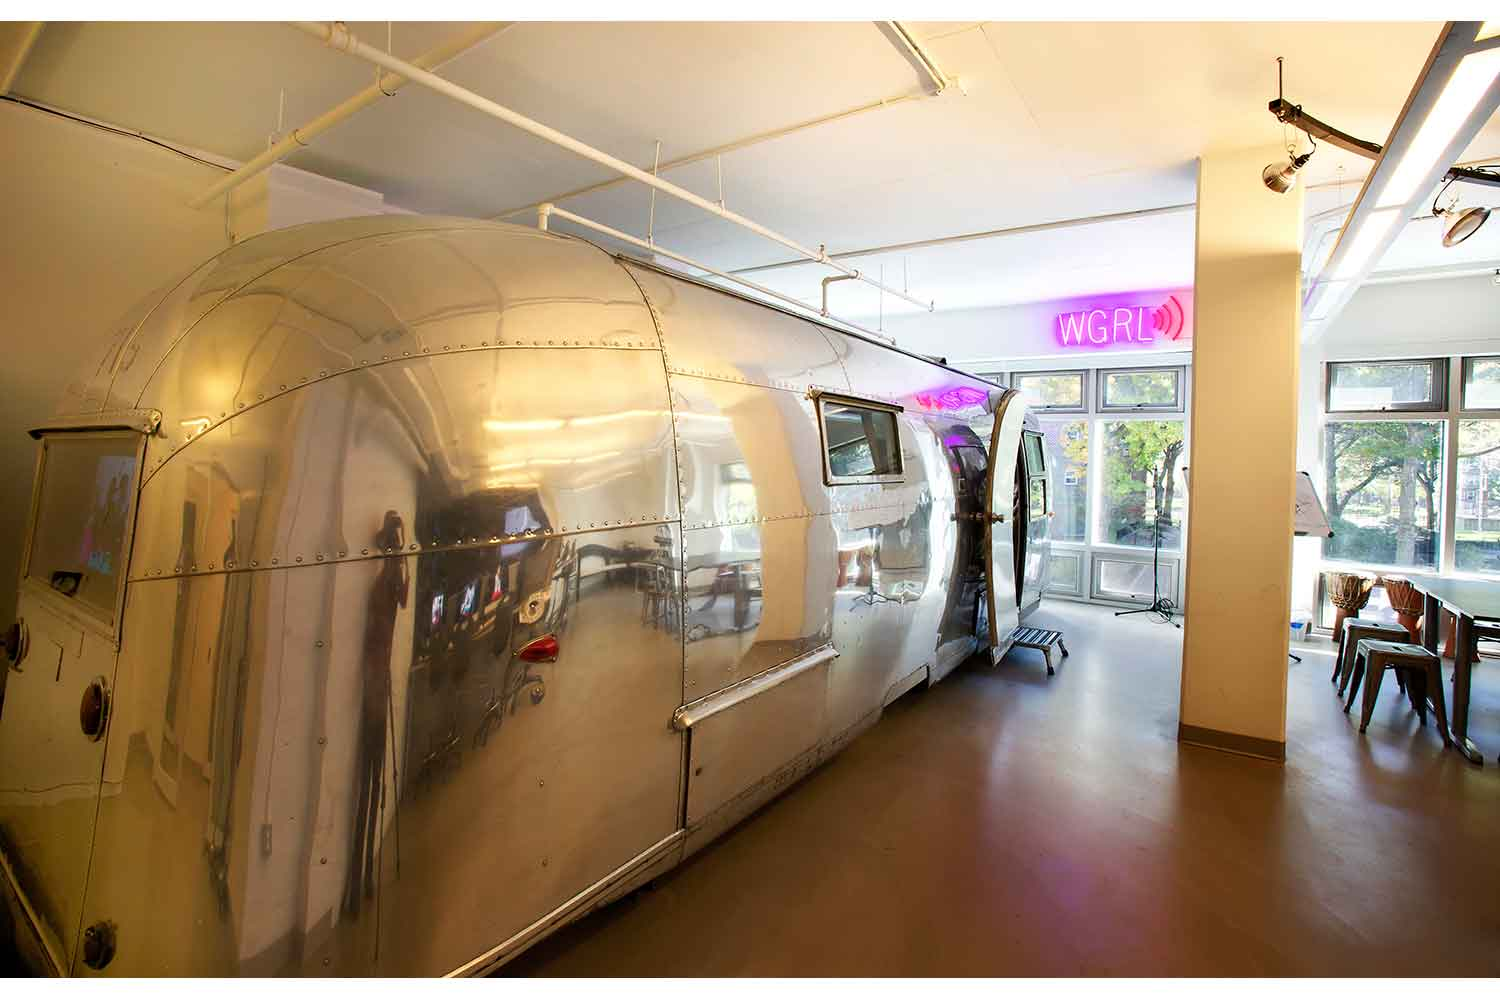 Lower East Side Girls Club Airstream Recording Studio designed by WSDG. Main airstream photo.